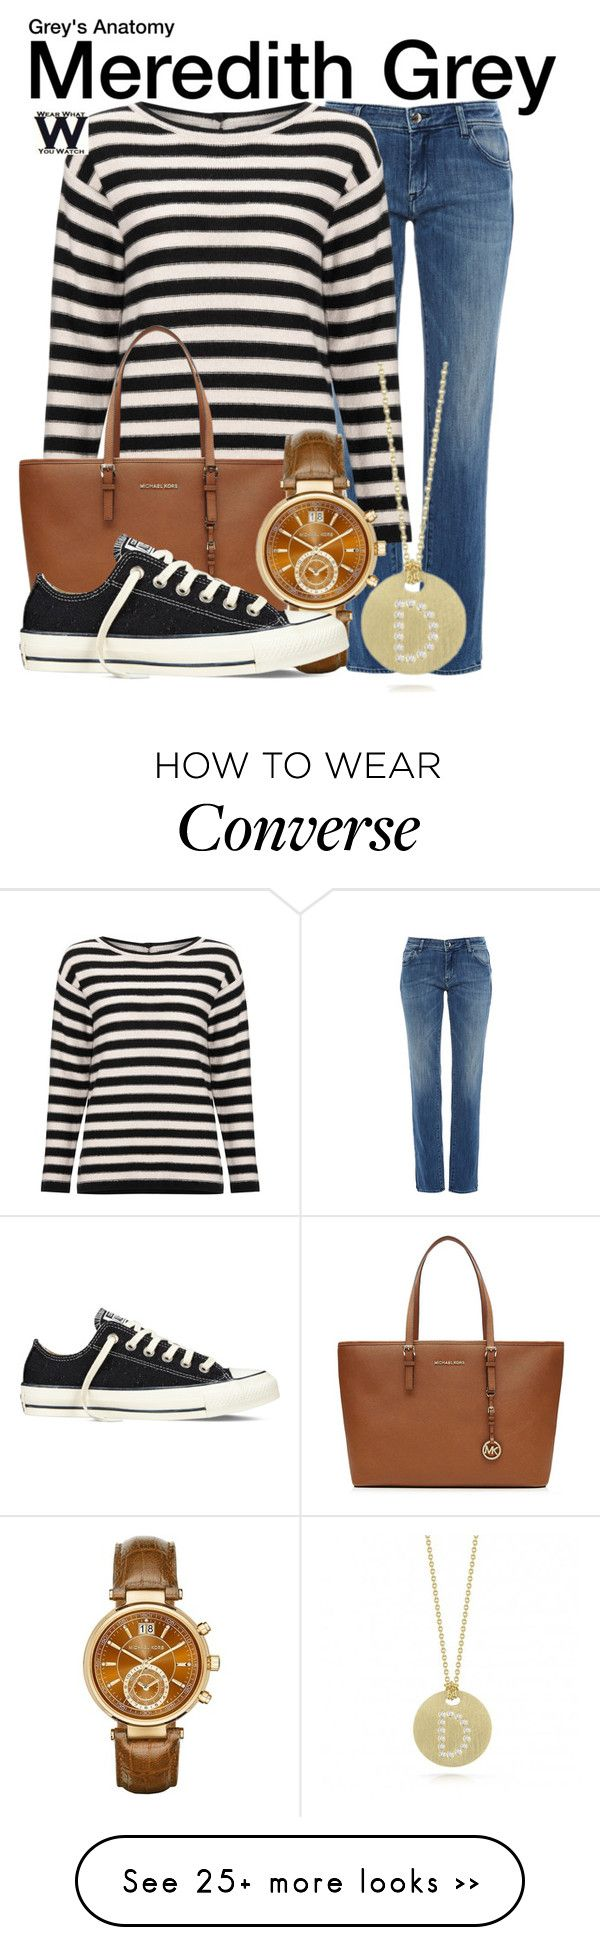 """Grey's Anatomy"" by wearwhatyouwatch on Polyvore featuring The Seafarer, Marella, MICHAEL Michael Kors, Michael Kors, Converse, Roberto Coin, television and wearwhatyouwatch"